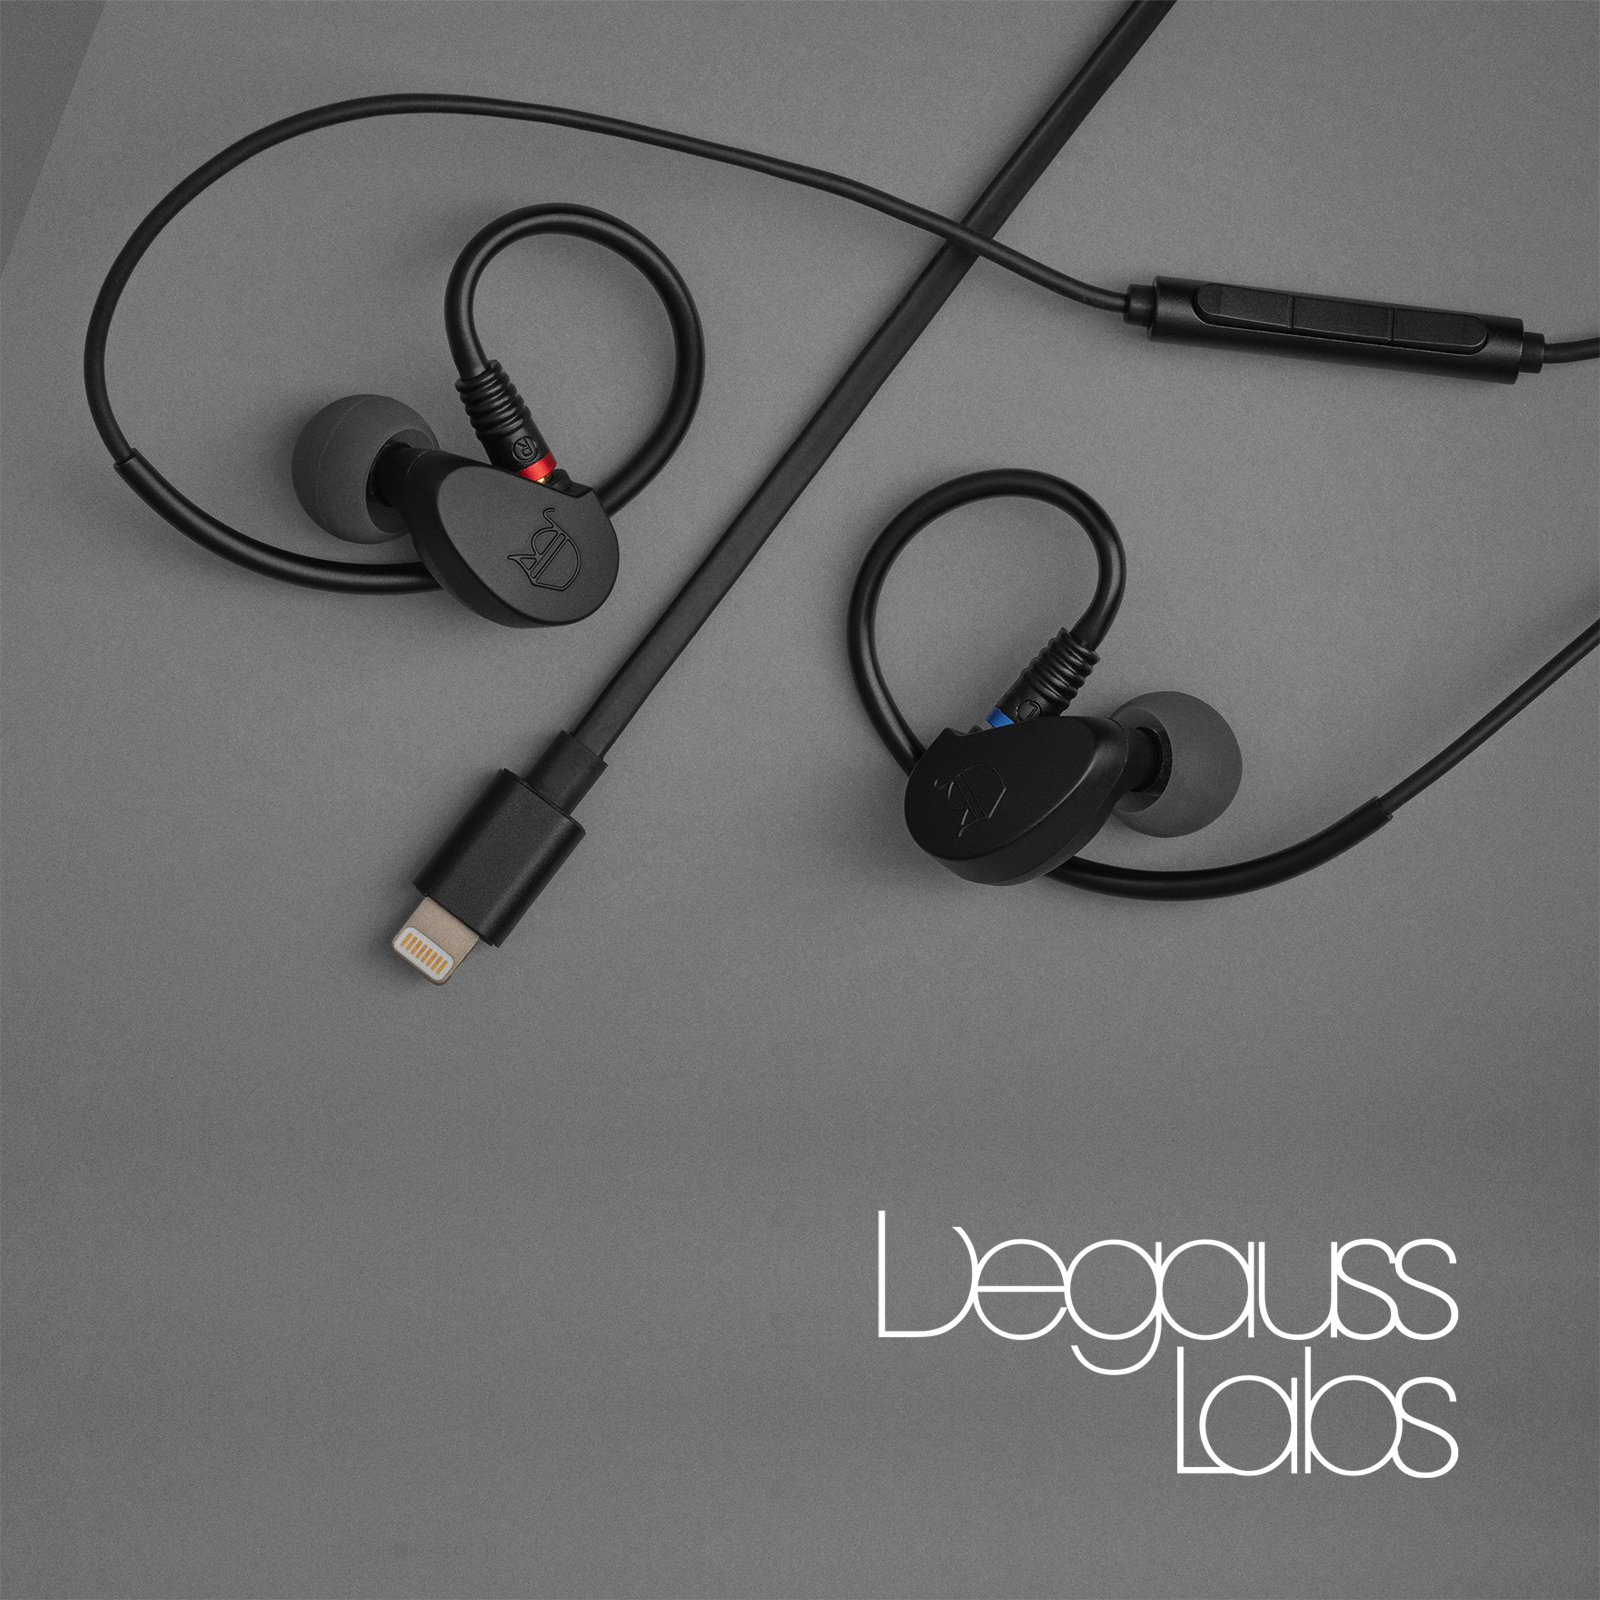 DEGAUSS LABS UNVEILS SUPER ADVANCED LIGHTNING EARPHONES FOR IPHONE